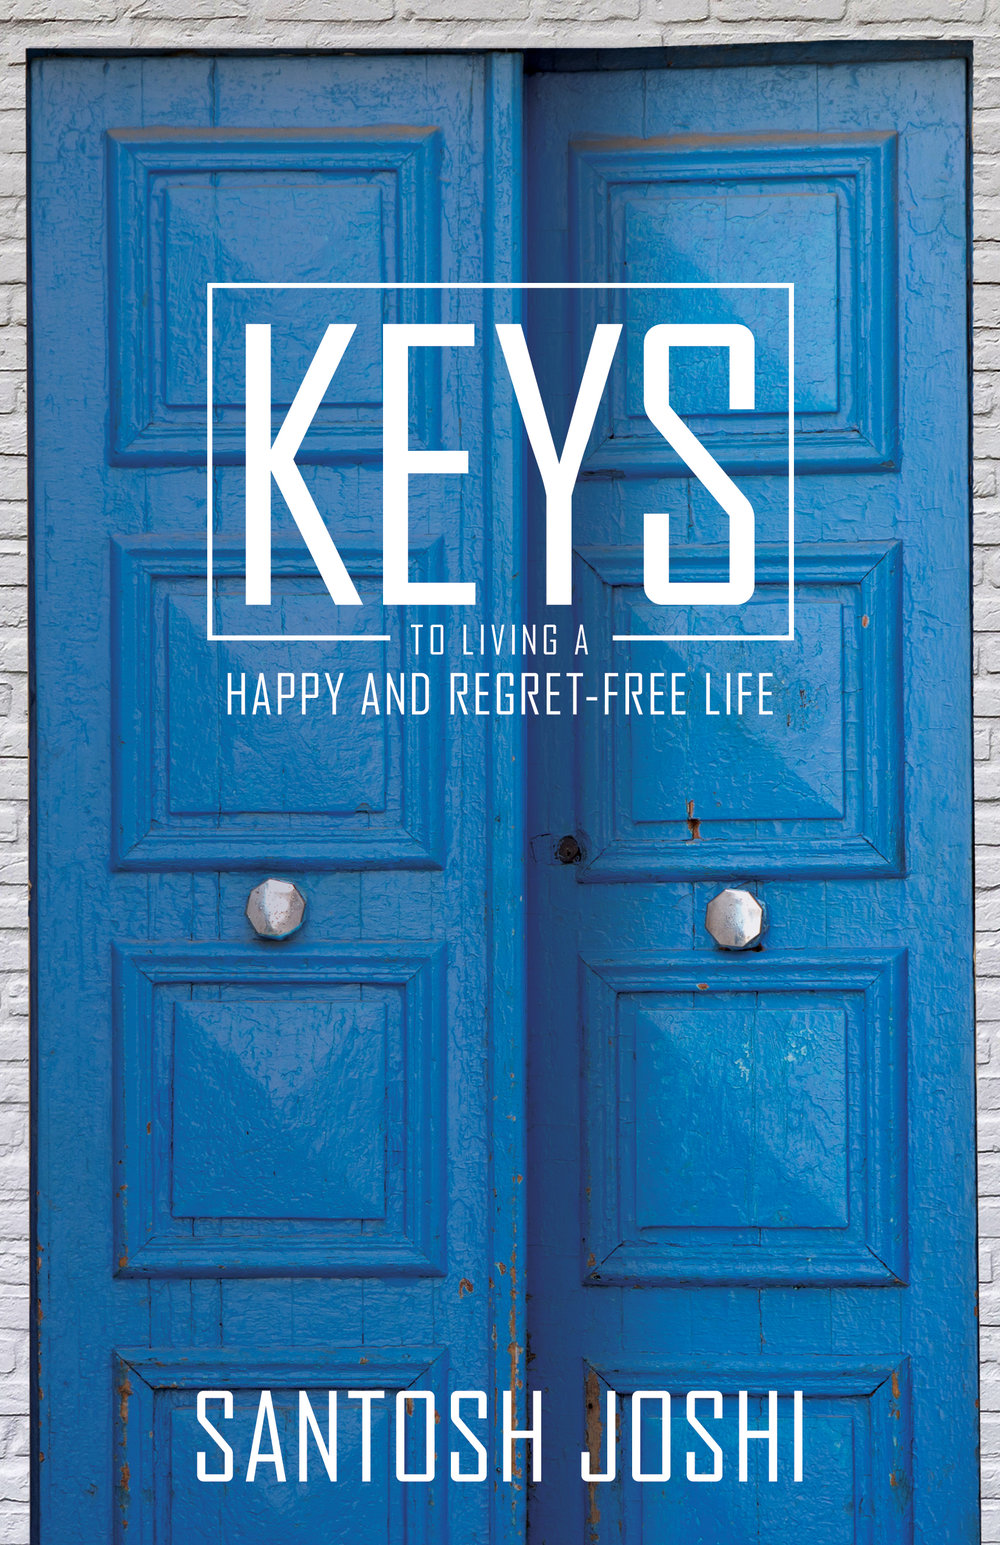 Keys to Living a Happy and Regret-Free Life - By santosh joshi